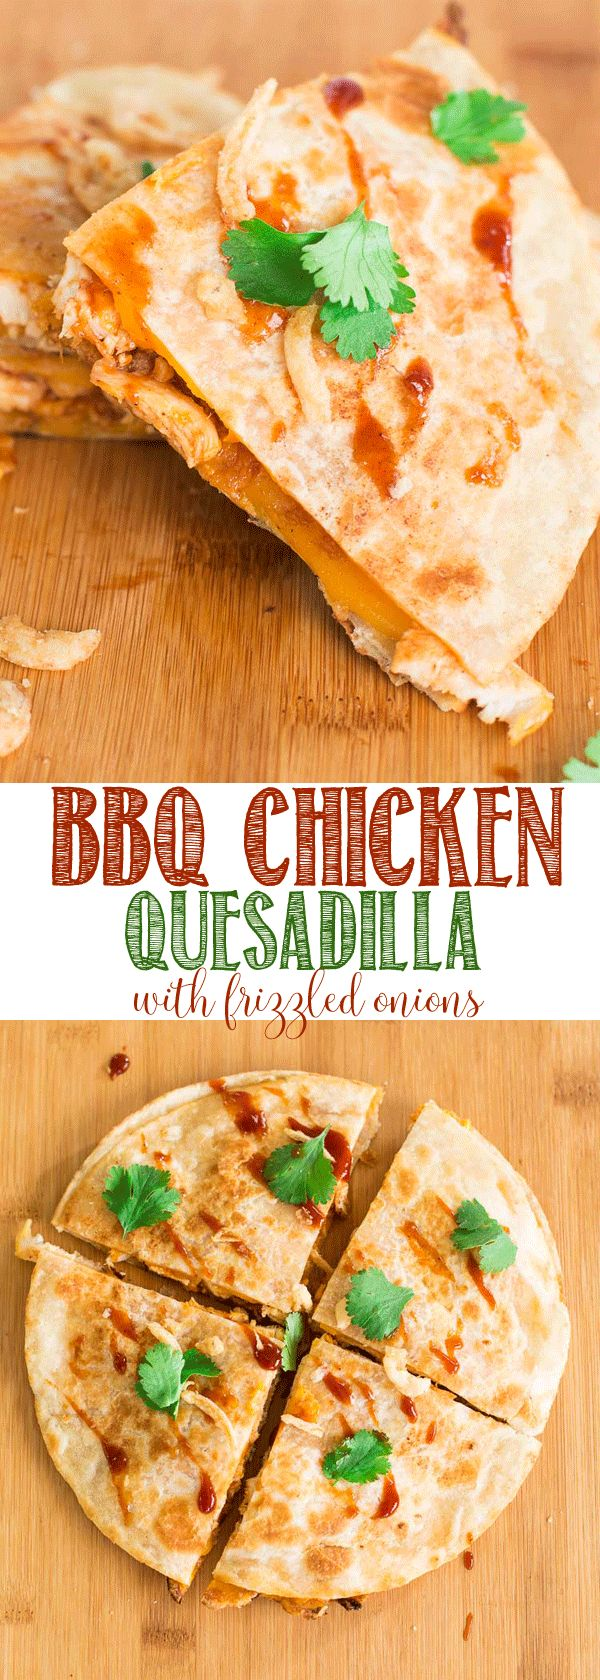 BBQ Chicken Quesadilla with Frizzled Onions Recipe | Cheddar Cheese | French's Fried Onions | BBQ Chicken | Quick Dinner | Easy Dinner | Leftover Chicken